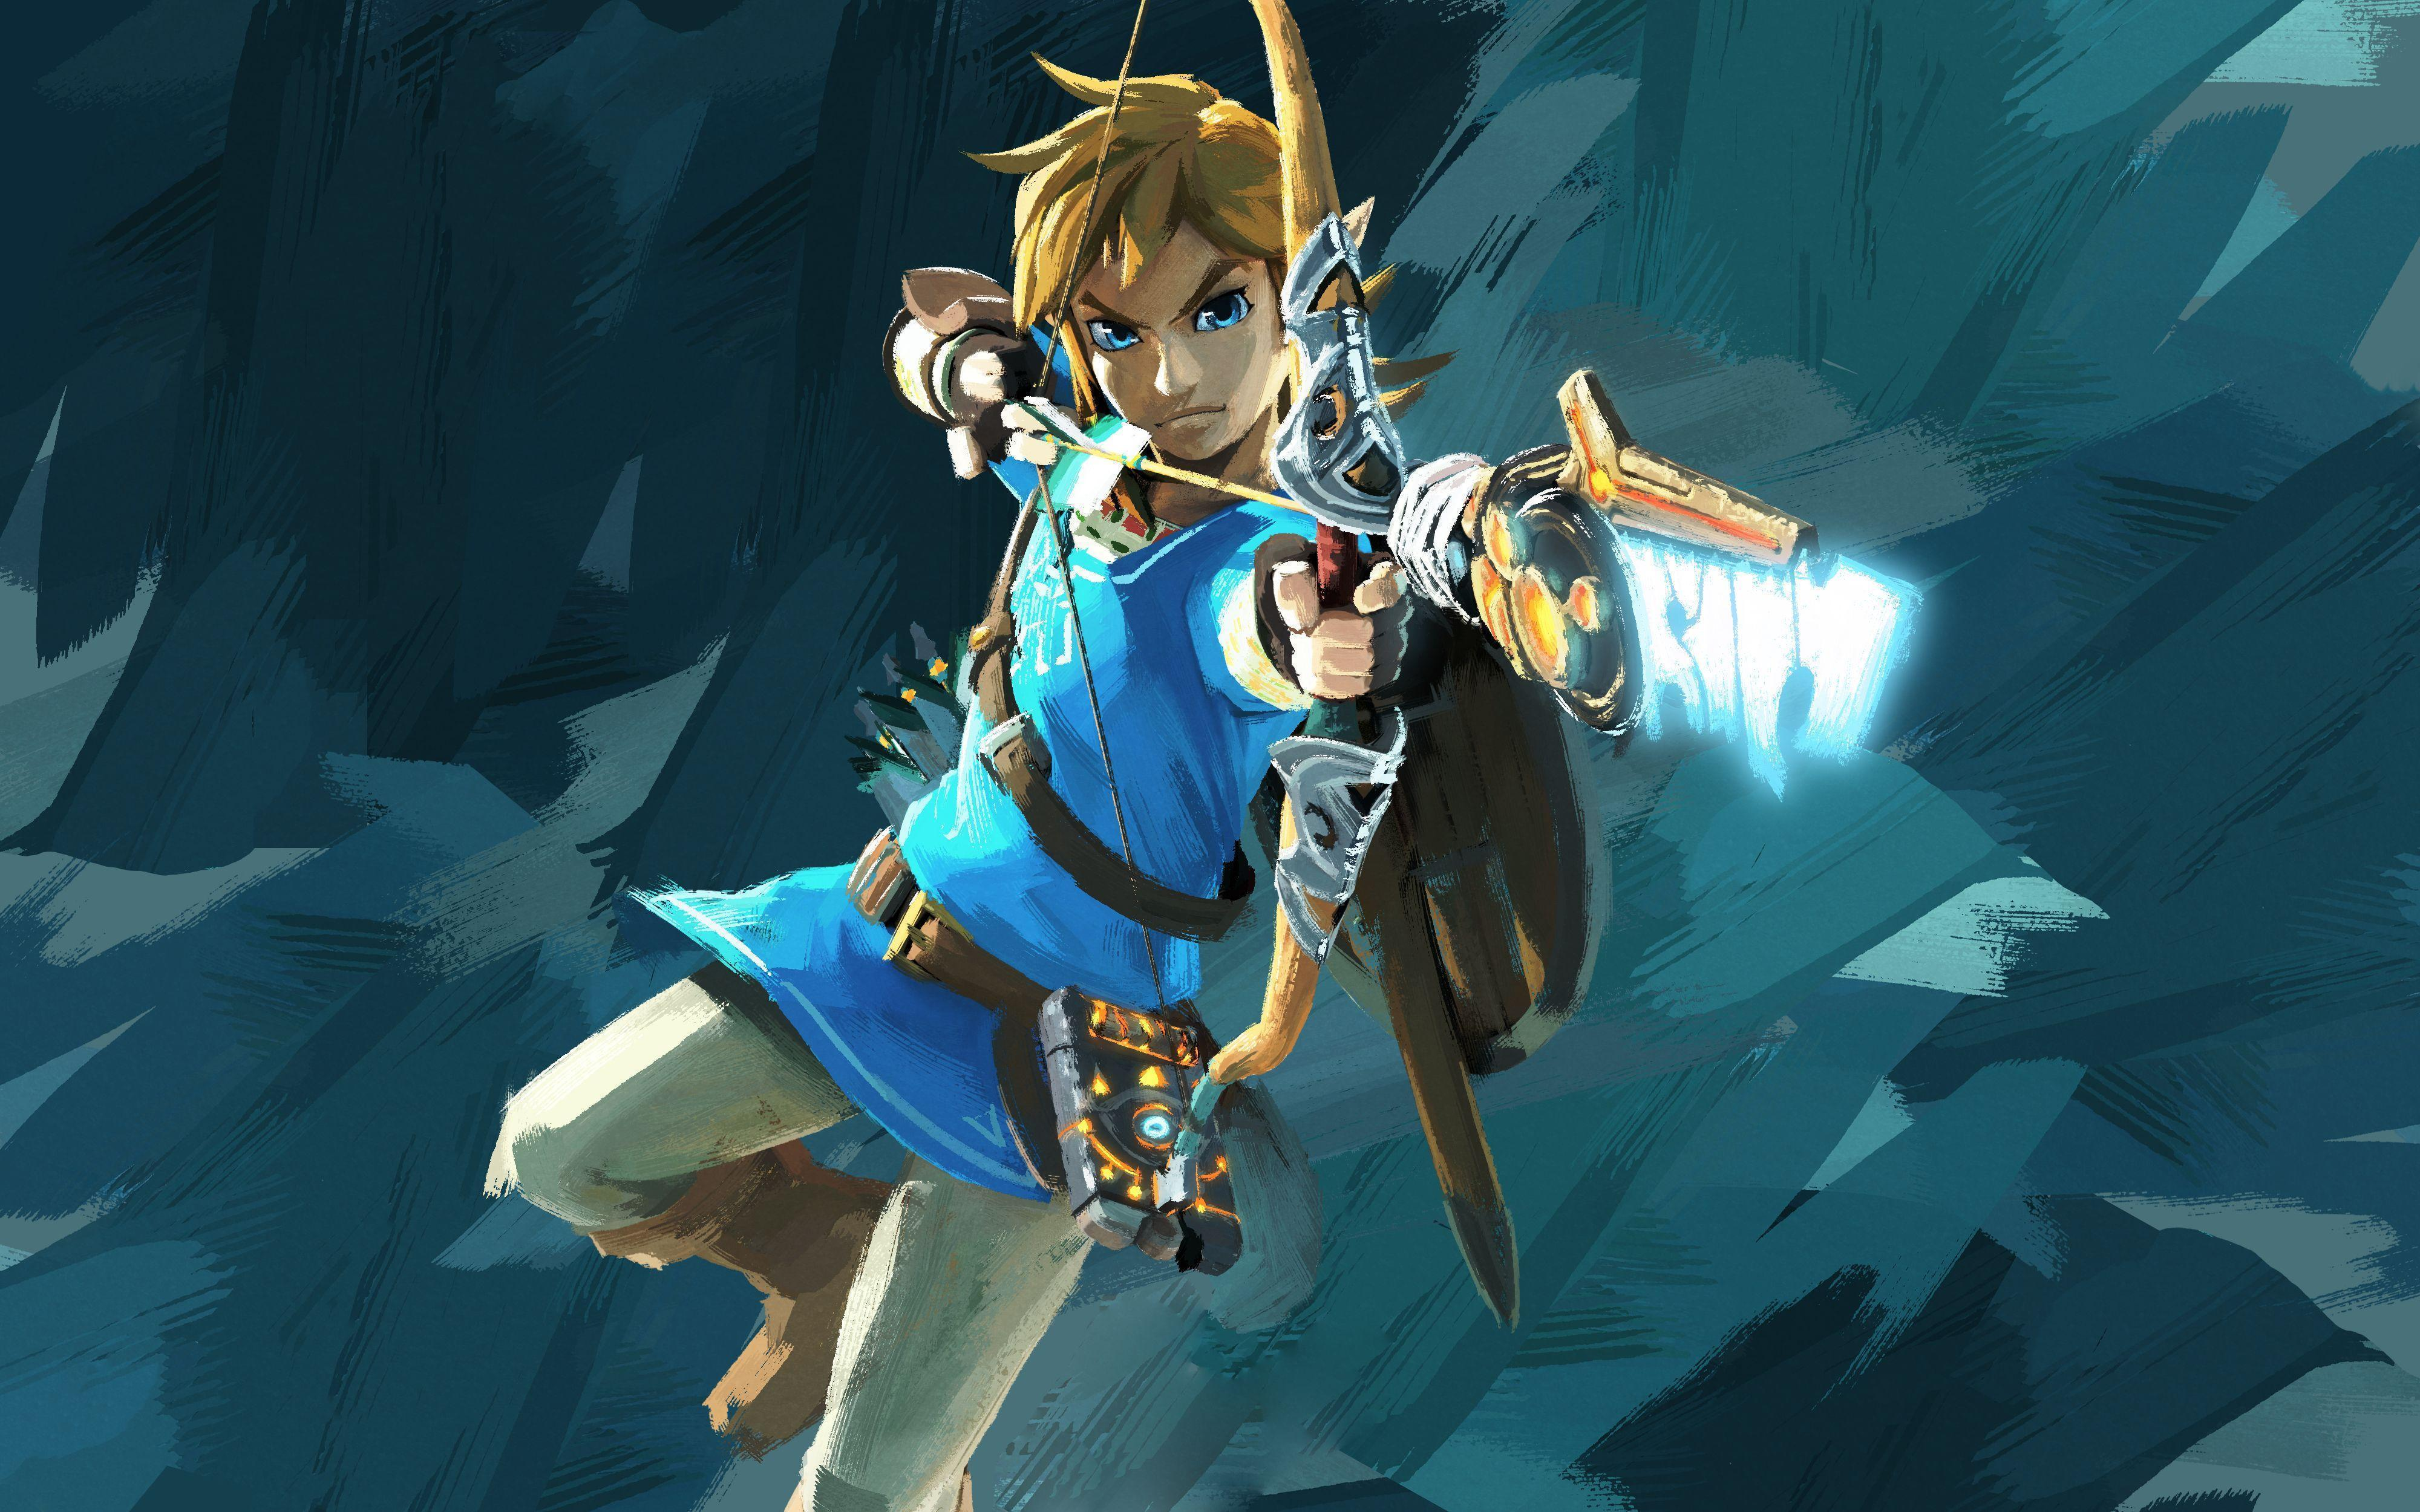 110 The Legend of Zelda: Breath of the Wild HD Wallpapers